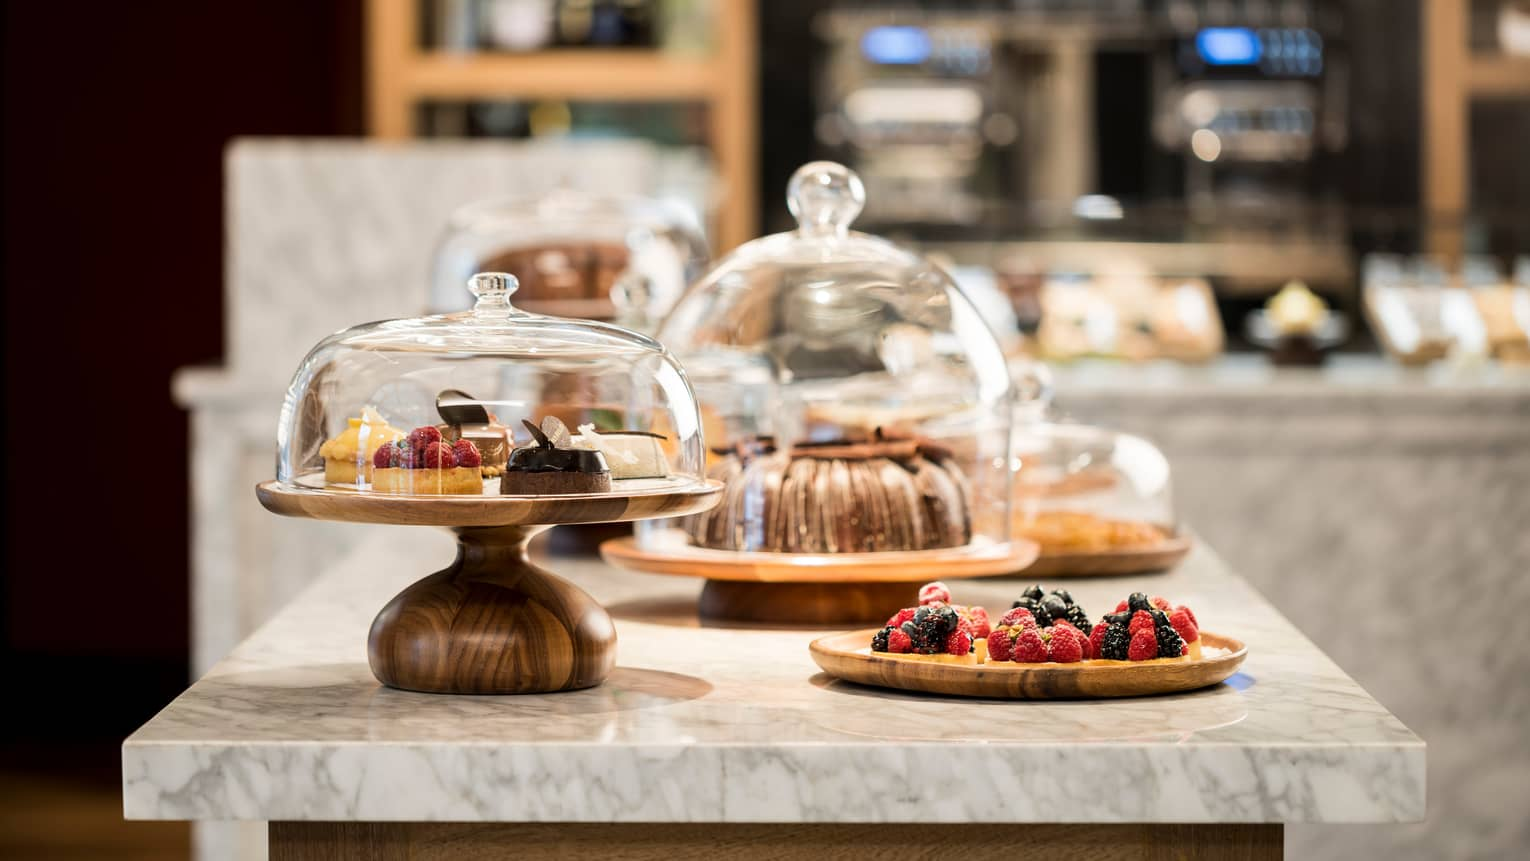 Sweets, desserts and pastries in glass cake displays on Pan Dulce white marble counter